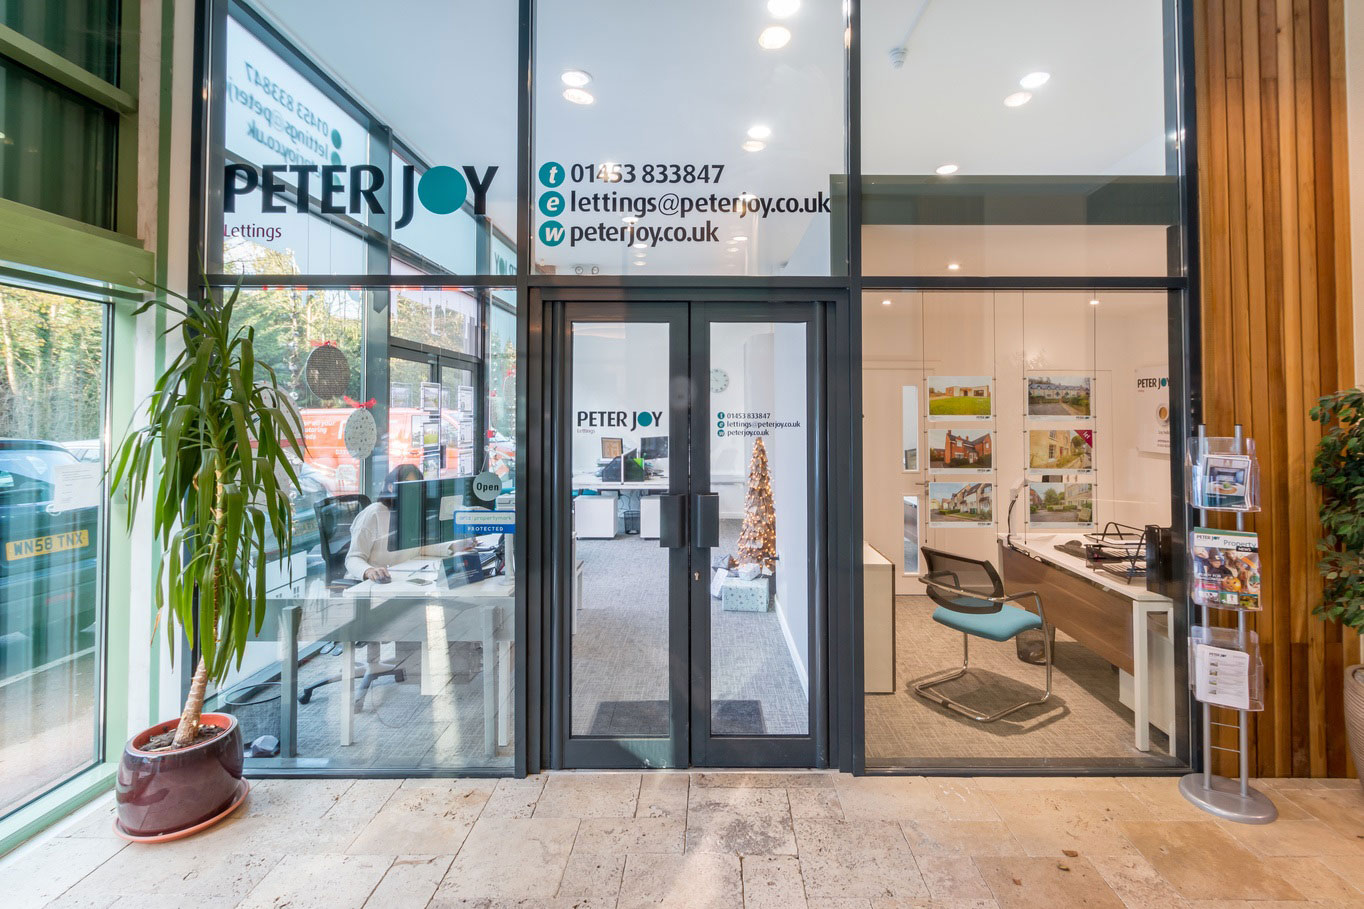 Peter Joy Lettings